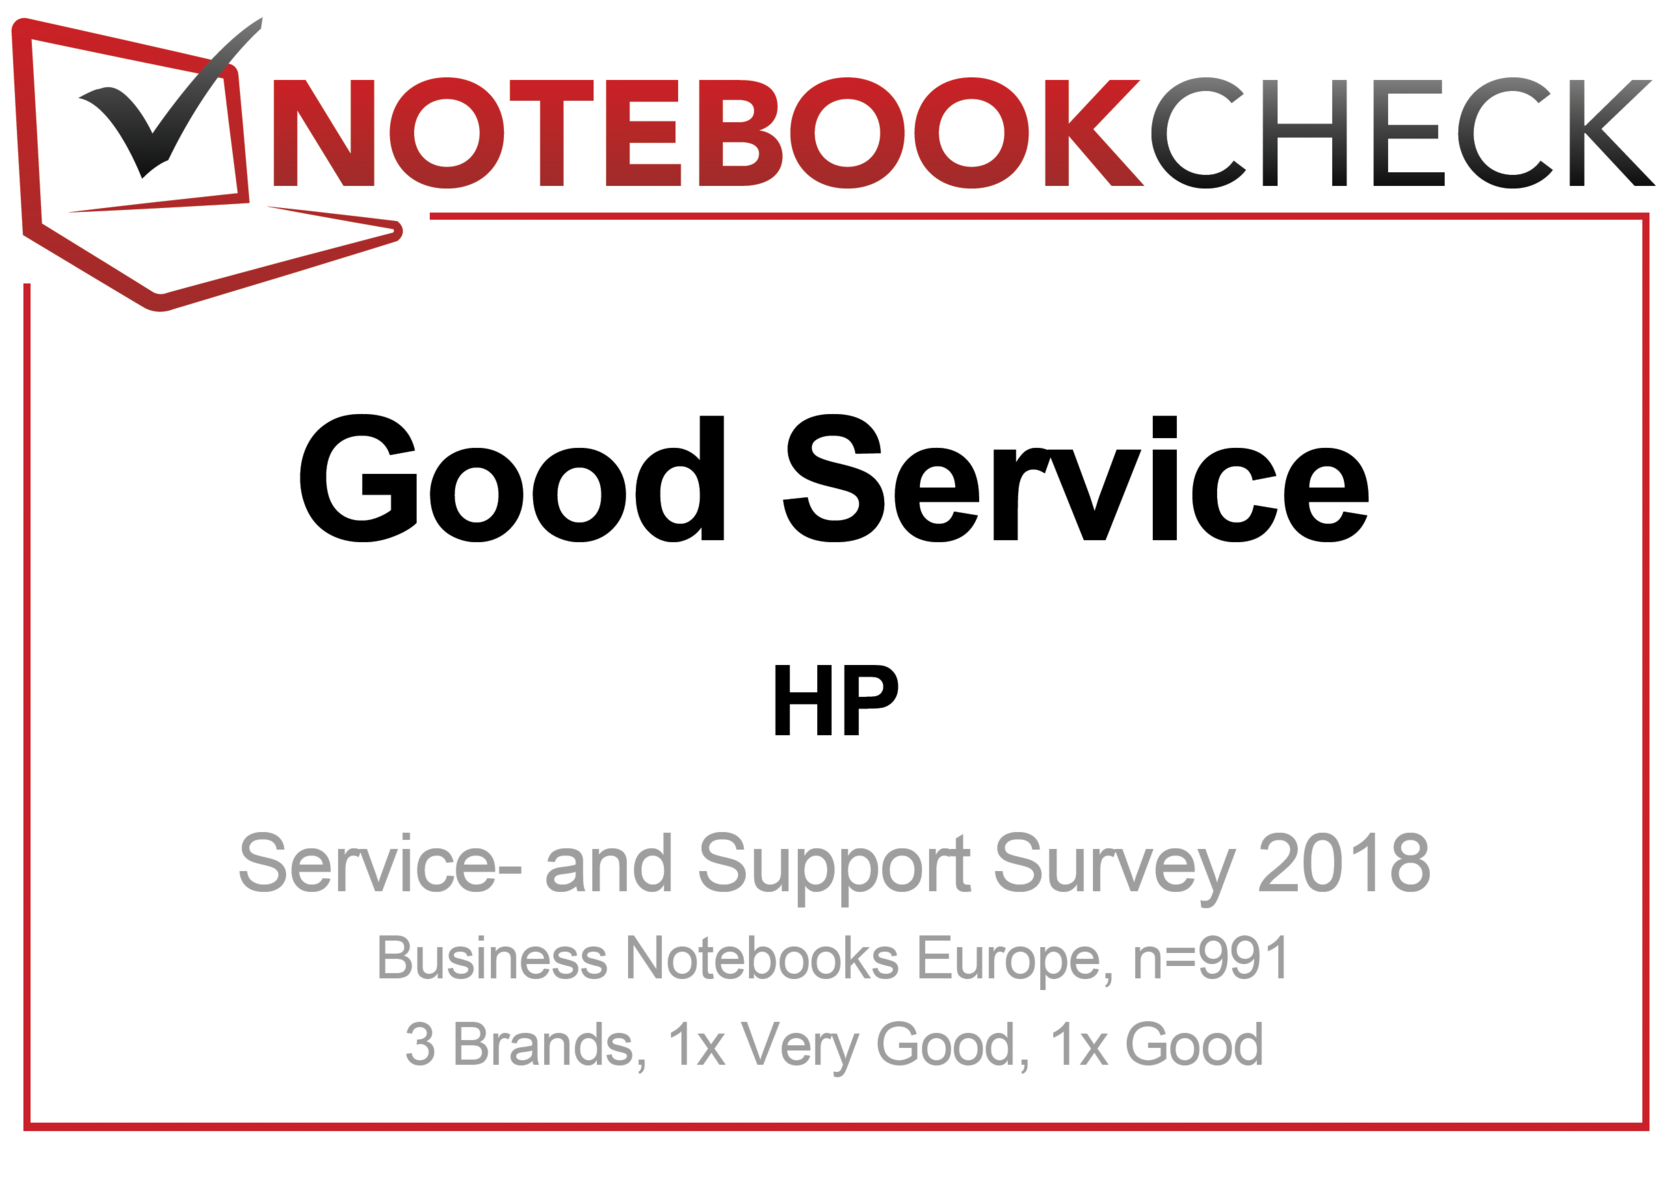 Notebook Service and Support Satisfaction Survey - Who has the best